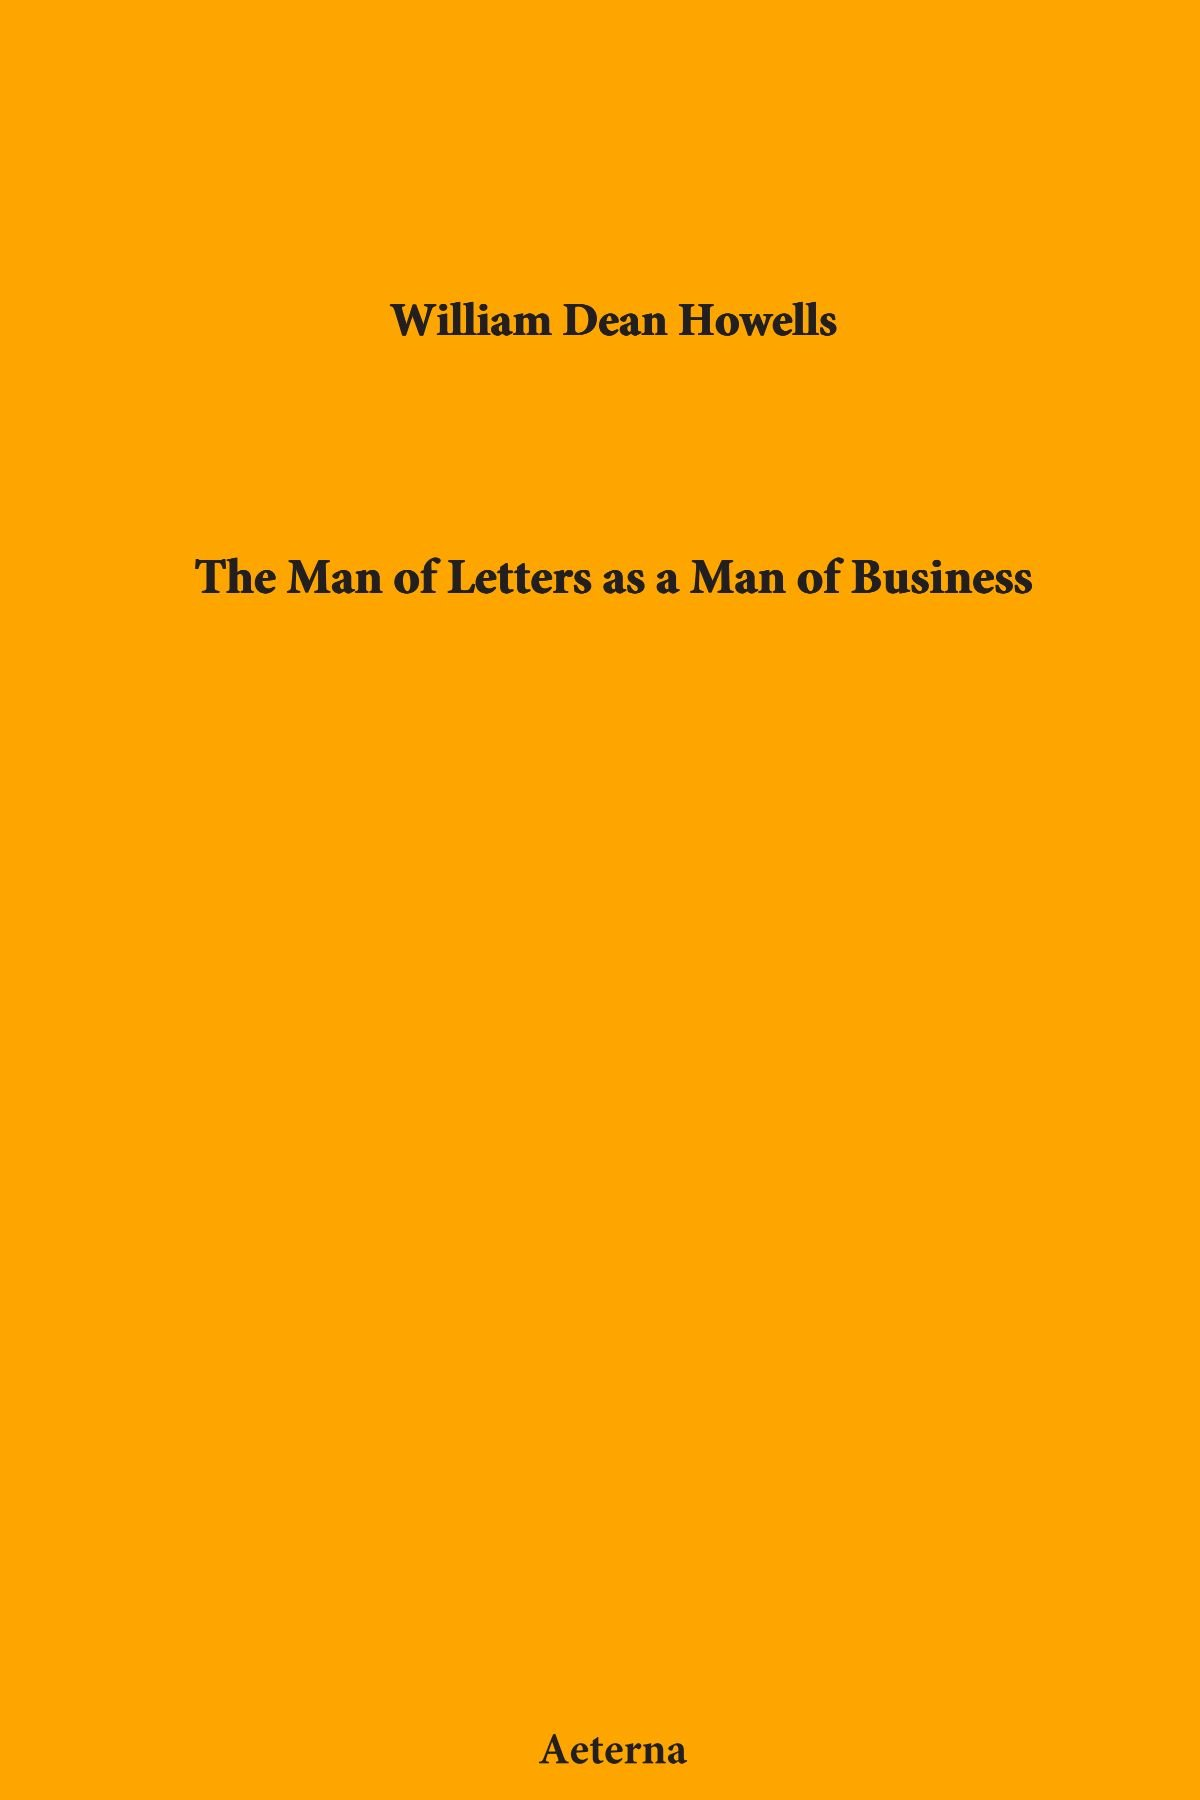 The Man of Letters as a Man of Business PDF